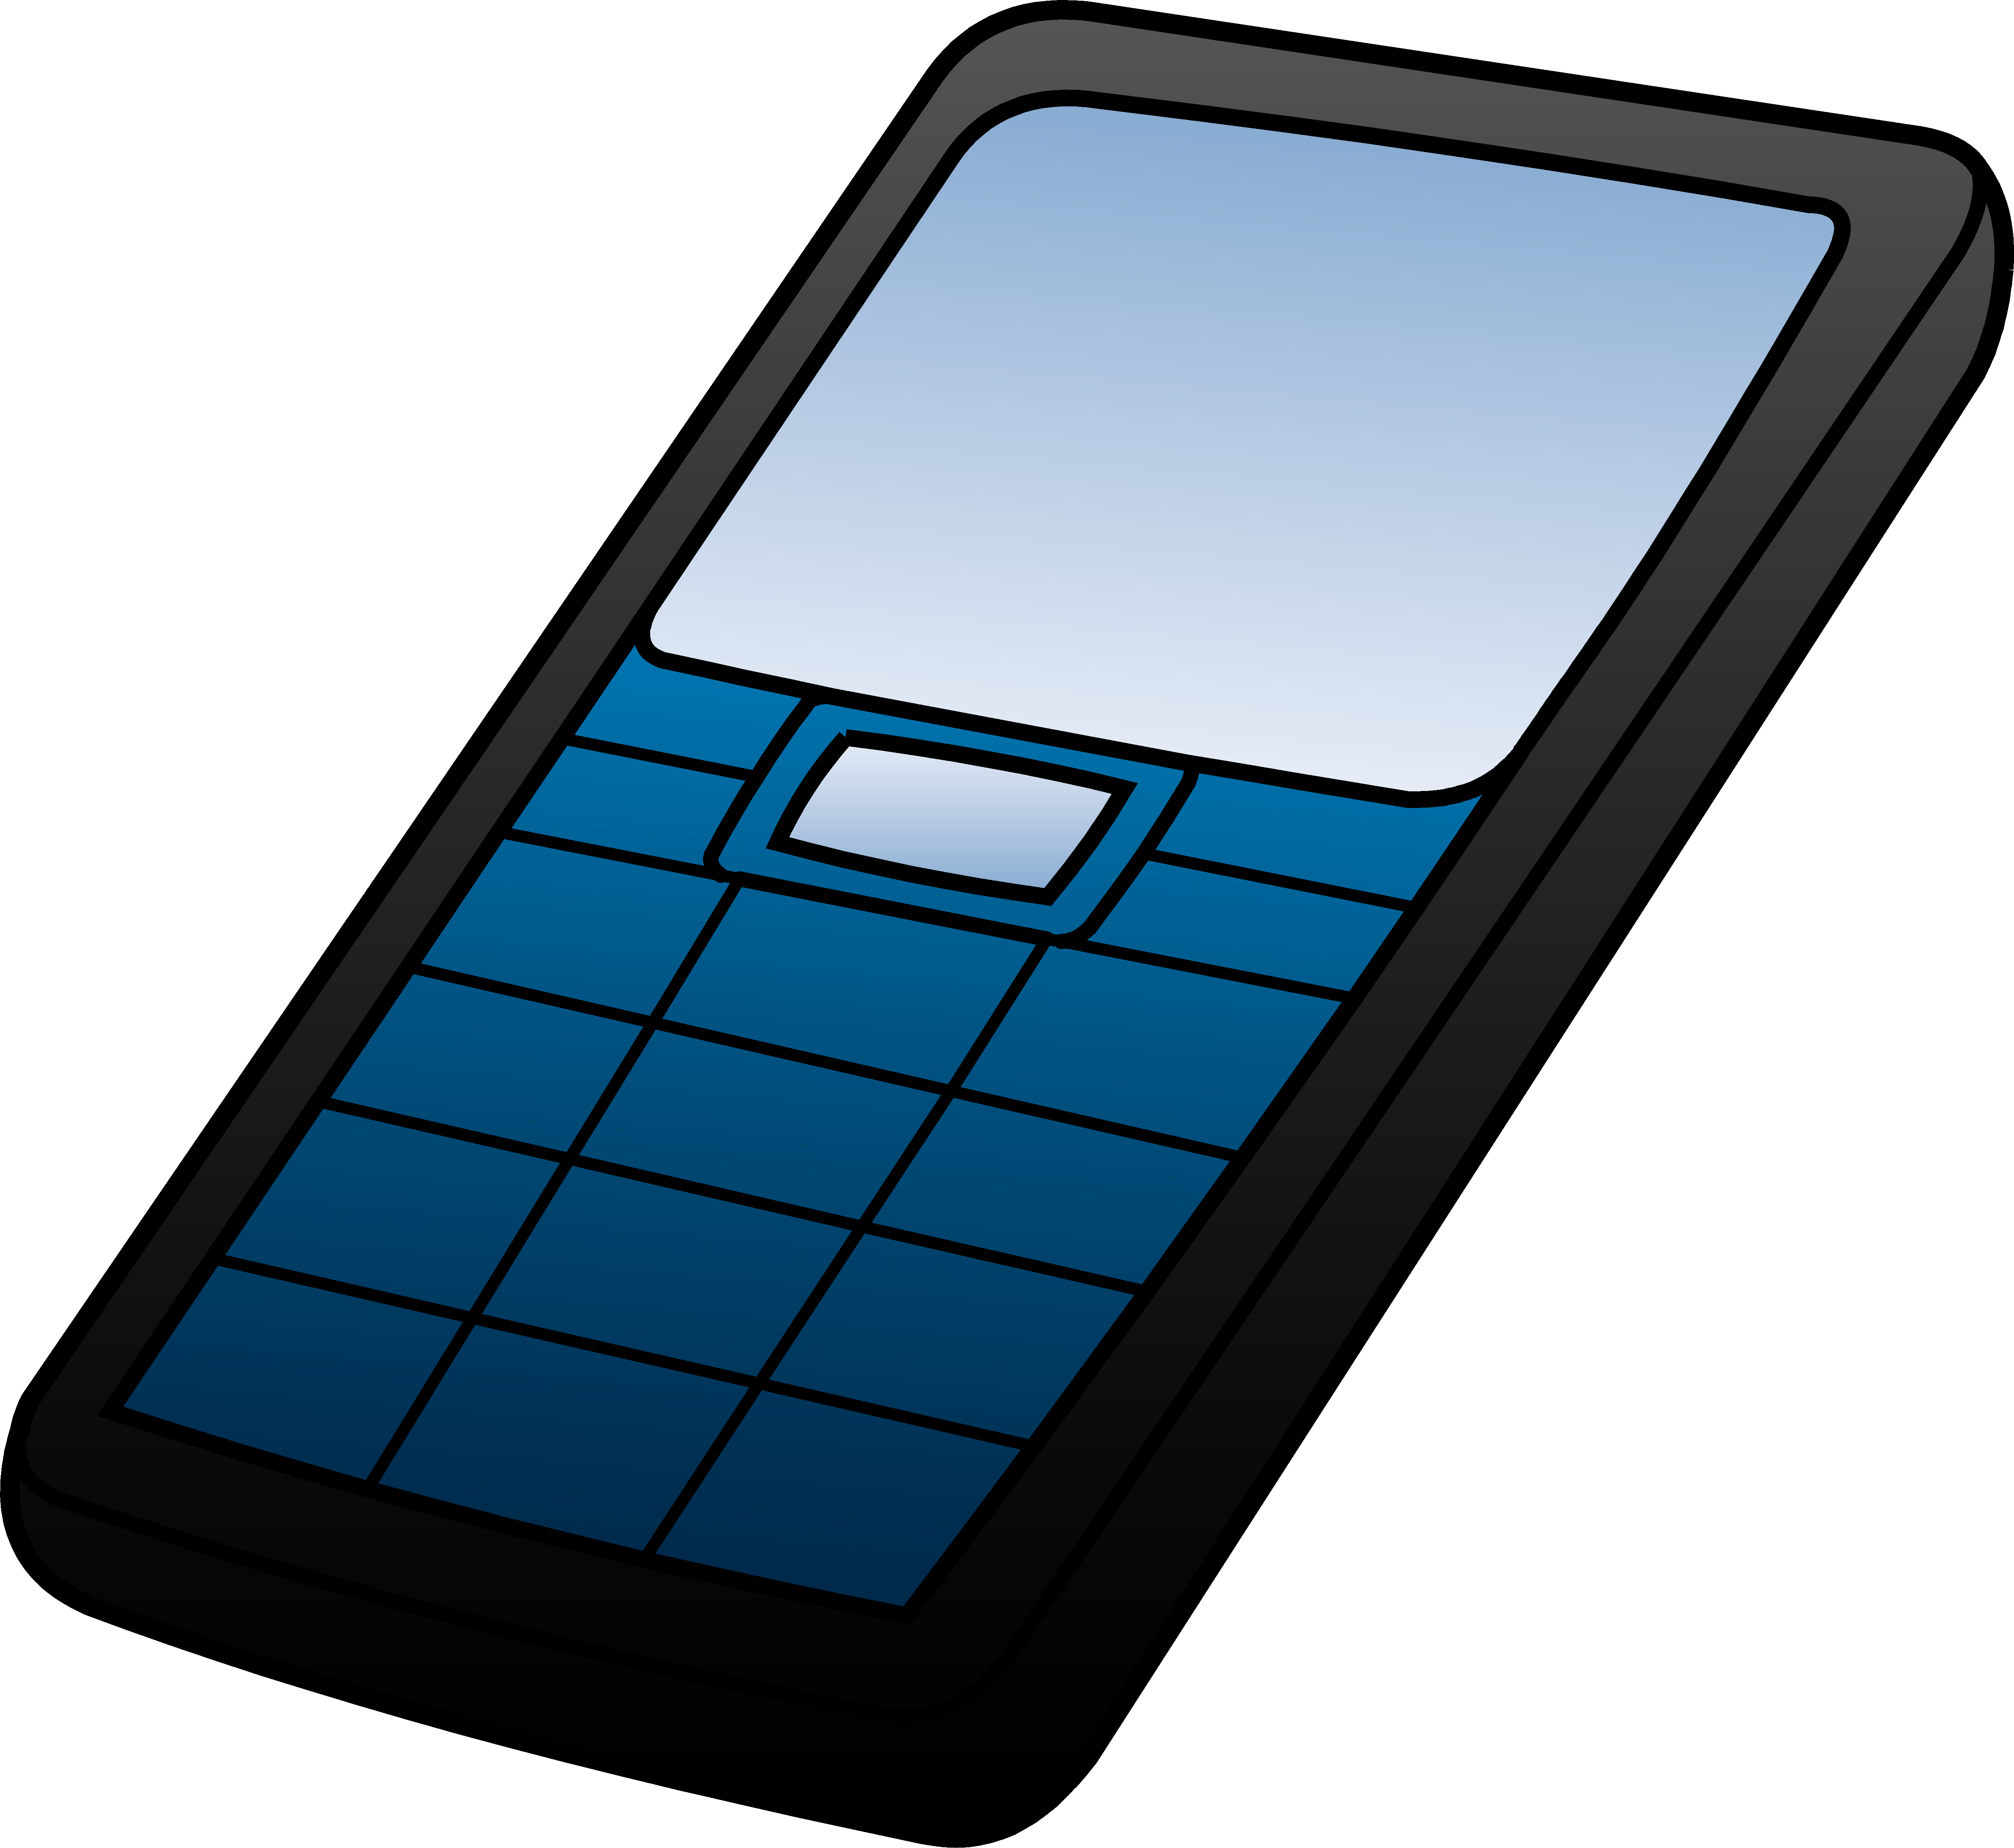 5563x5105 Iphone Clipart Animated